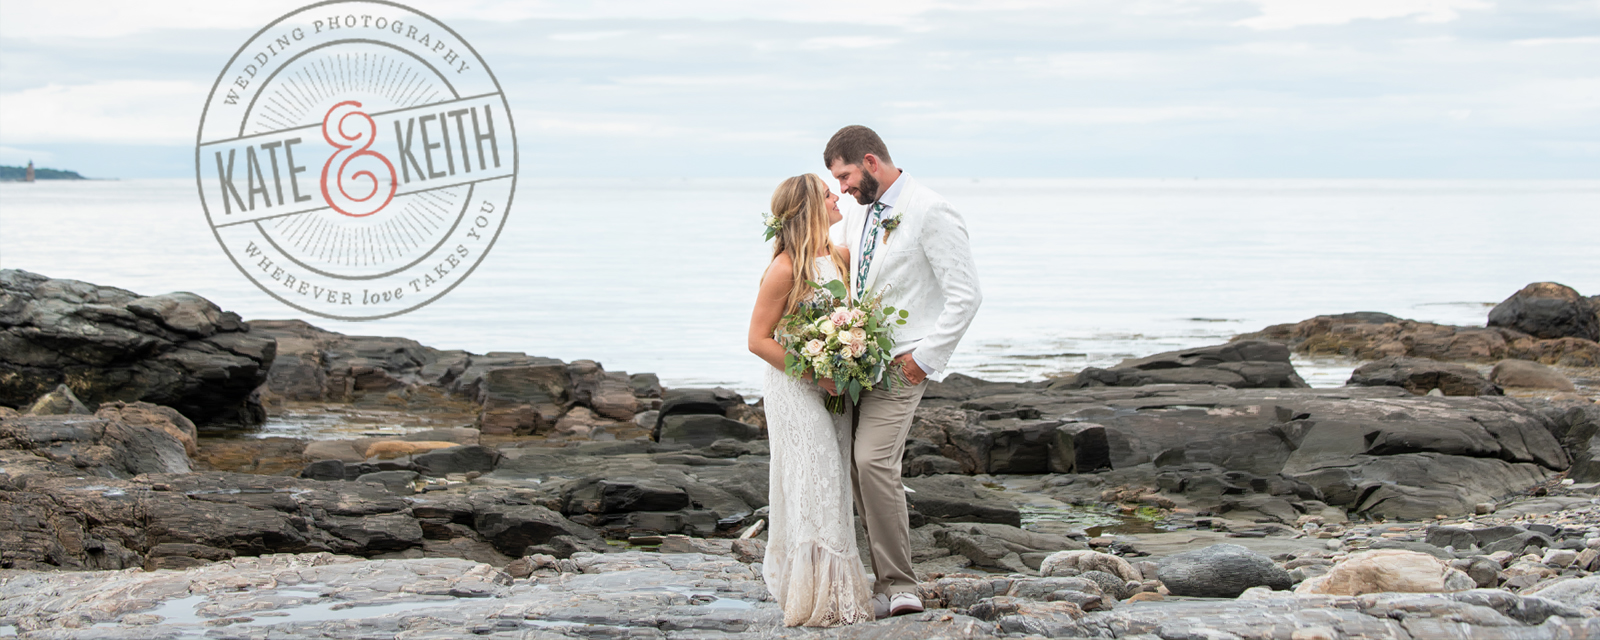 Seacoast Science Center Wedding